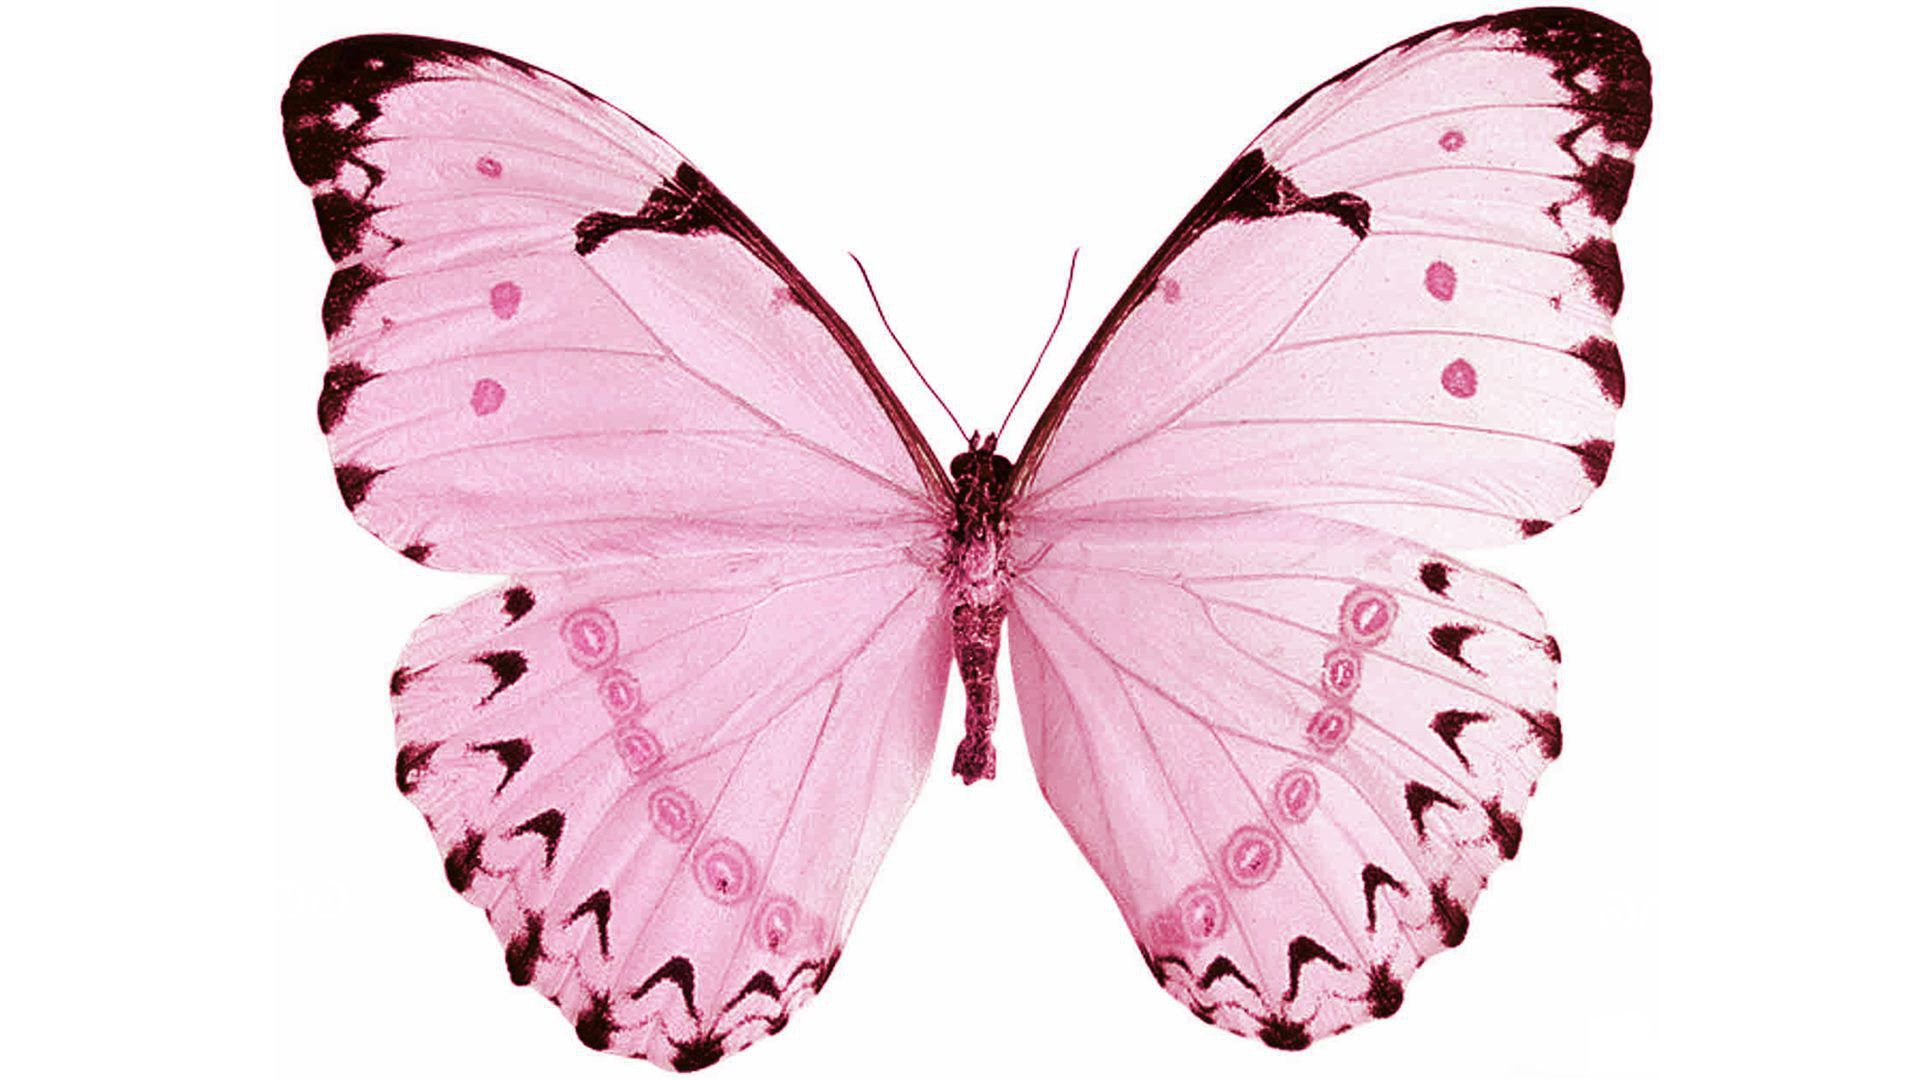 Pink Butterfly Hd White Background